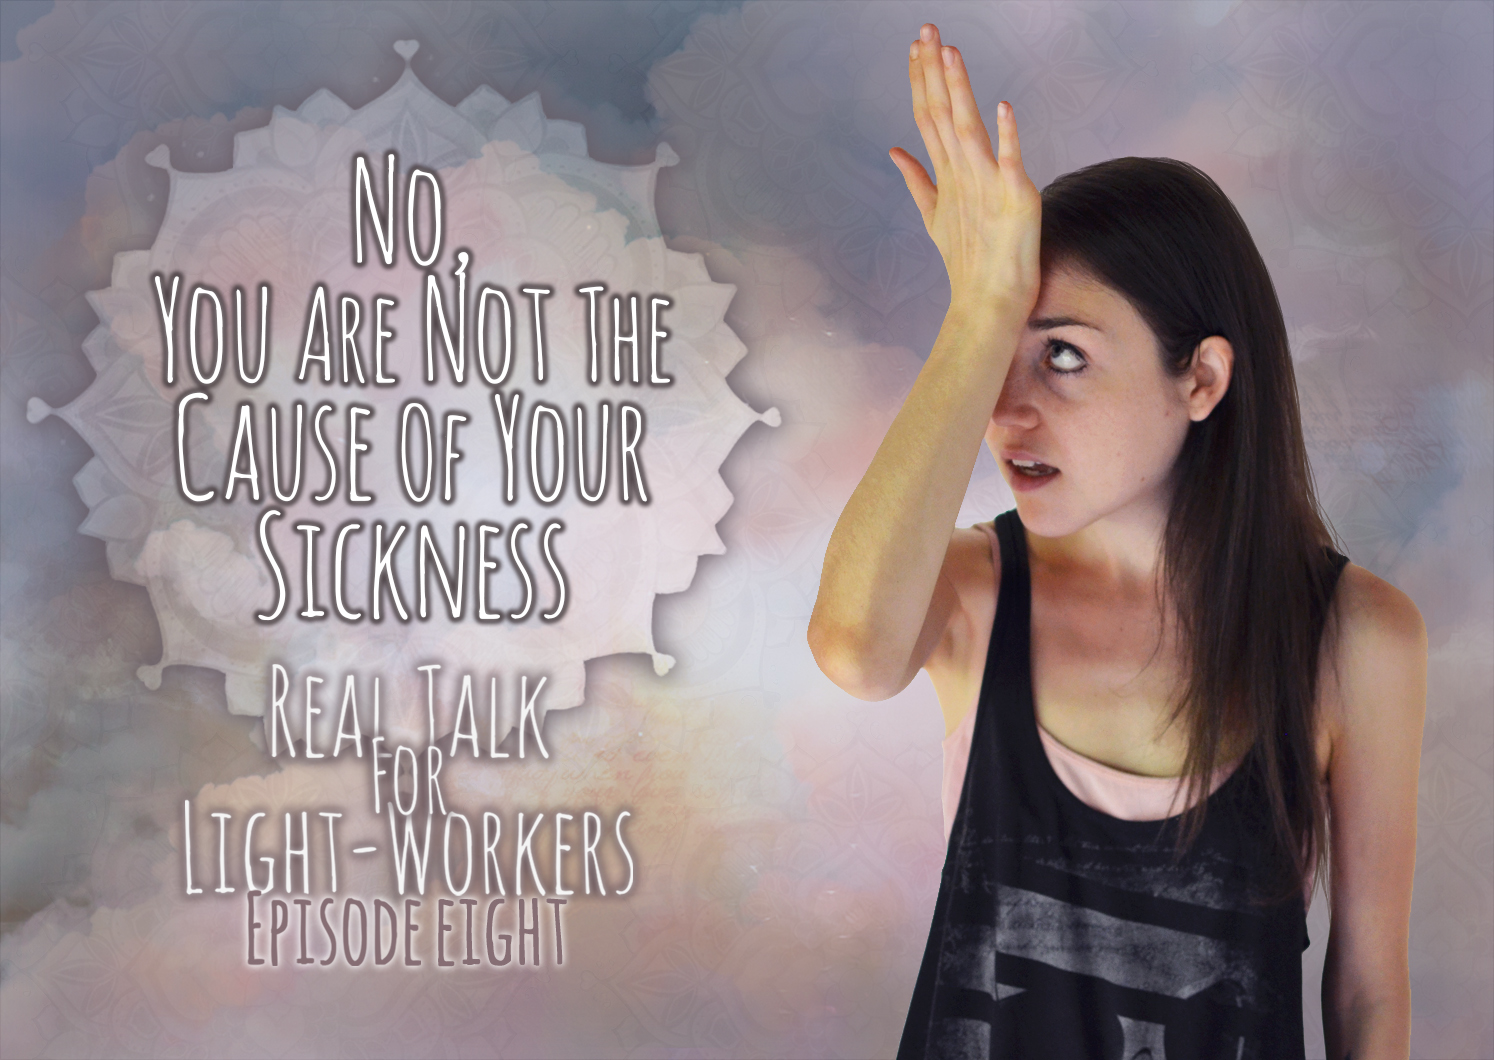 Real Talk For Light Workers Episode 8: No, You Did Not Cause Your Illness – Here's Why